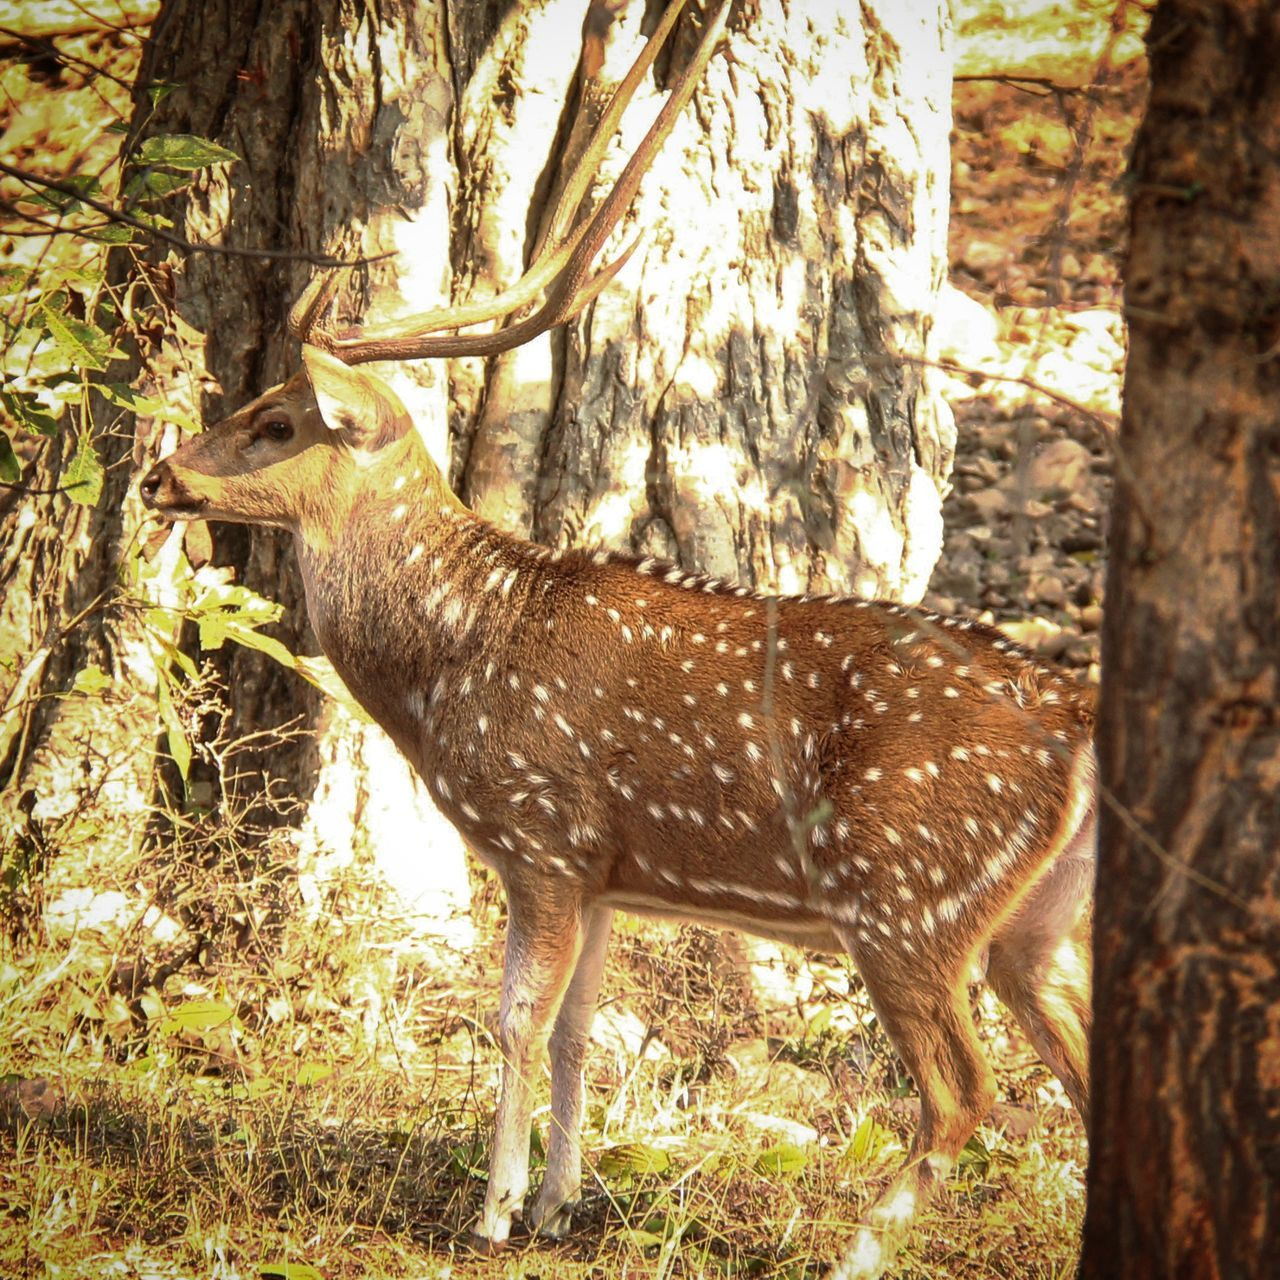 Deersighting Deers Nature Beauty Peace JungleExperience Wildlife Photography Outdoors No People Forest Animals In The Wild